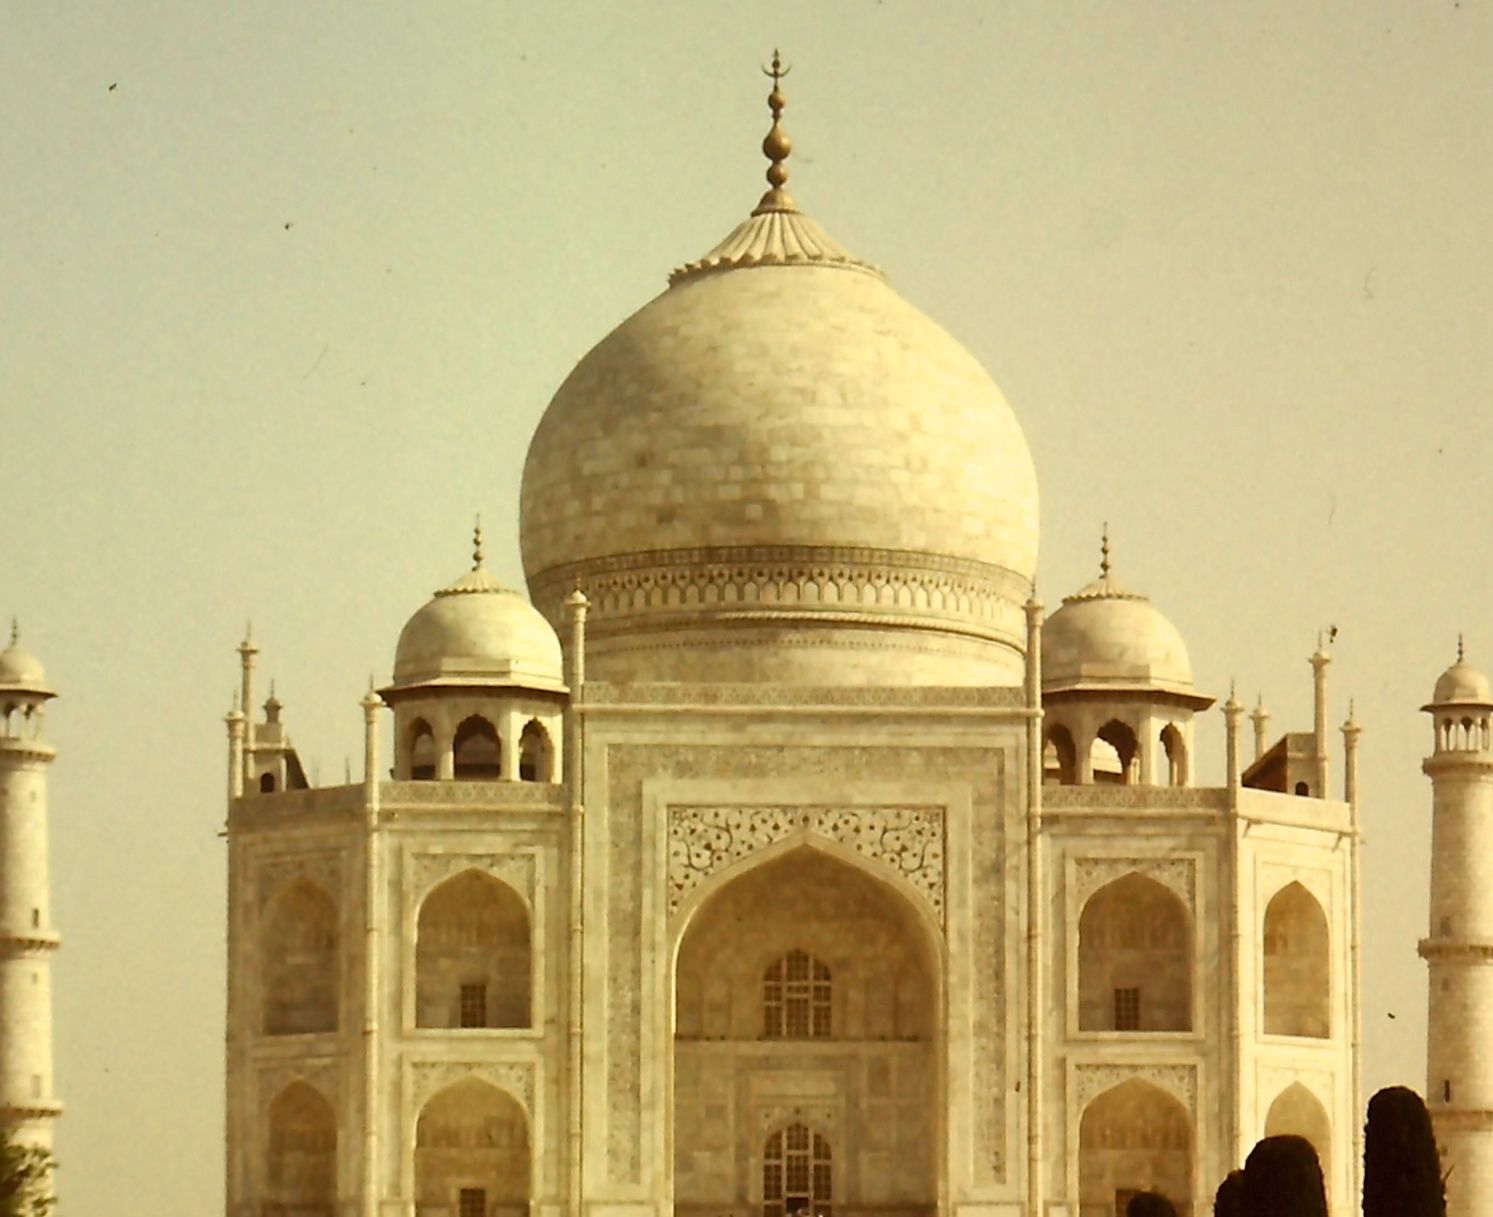 Taj Mahal - Temple of Love - Agra, India